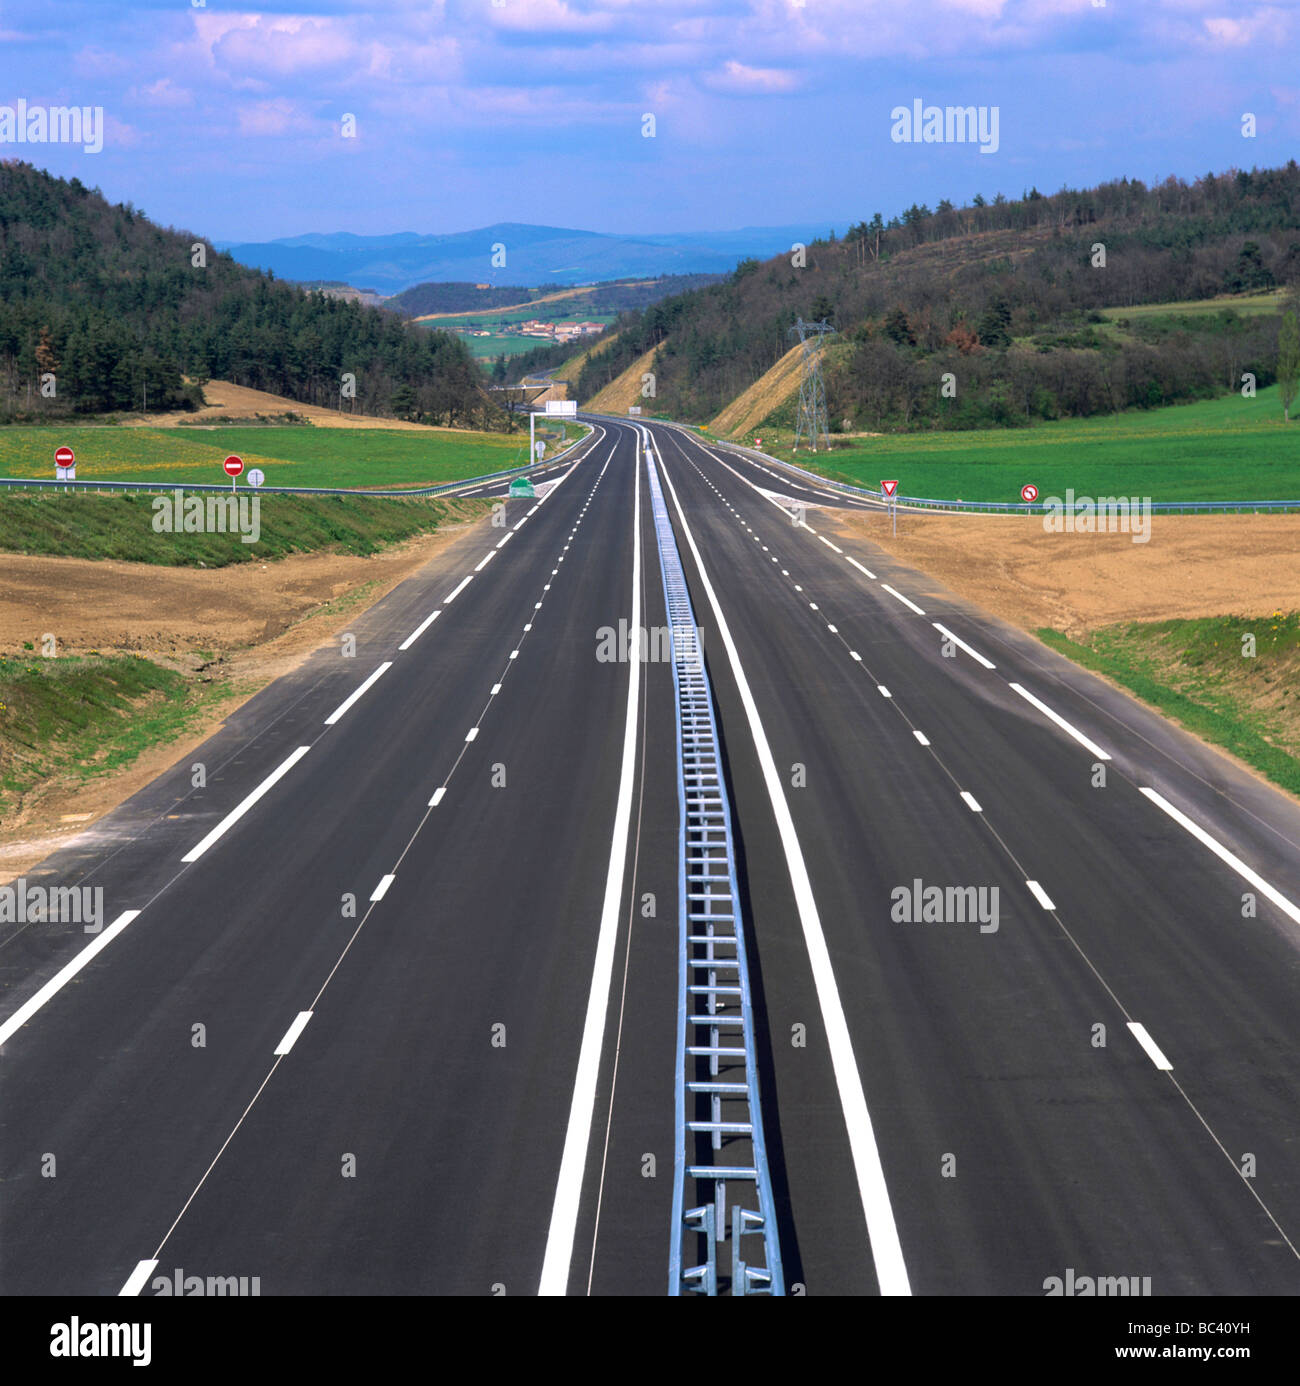 French motorway. - Stock Image